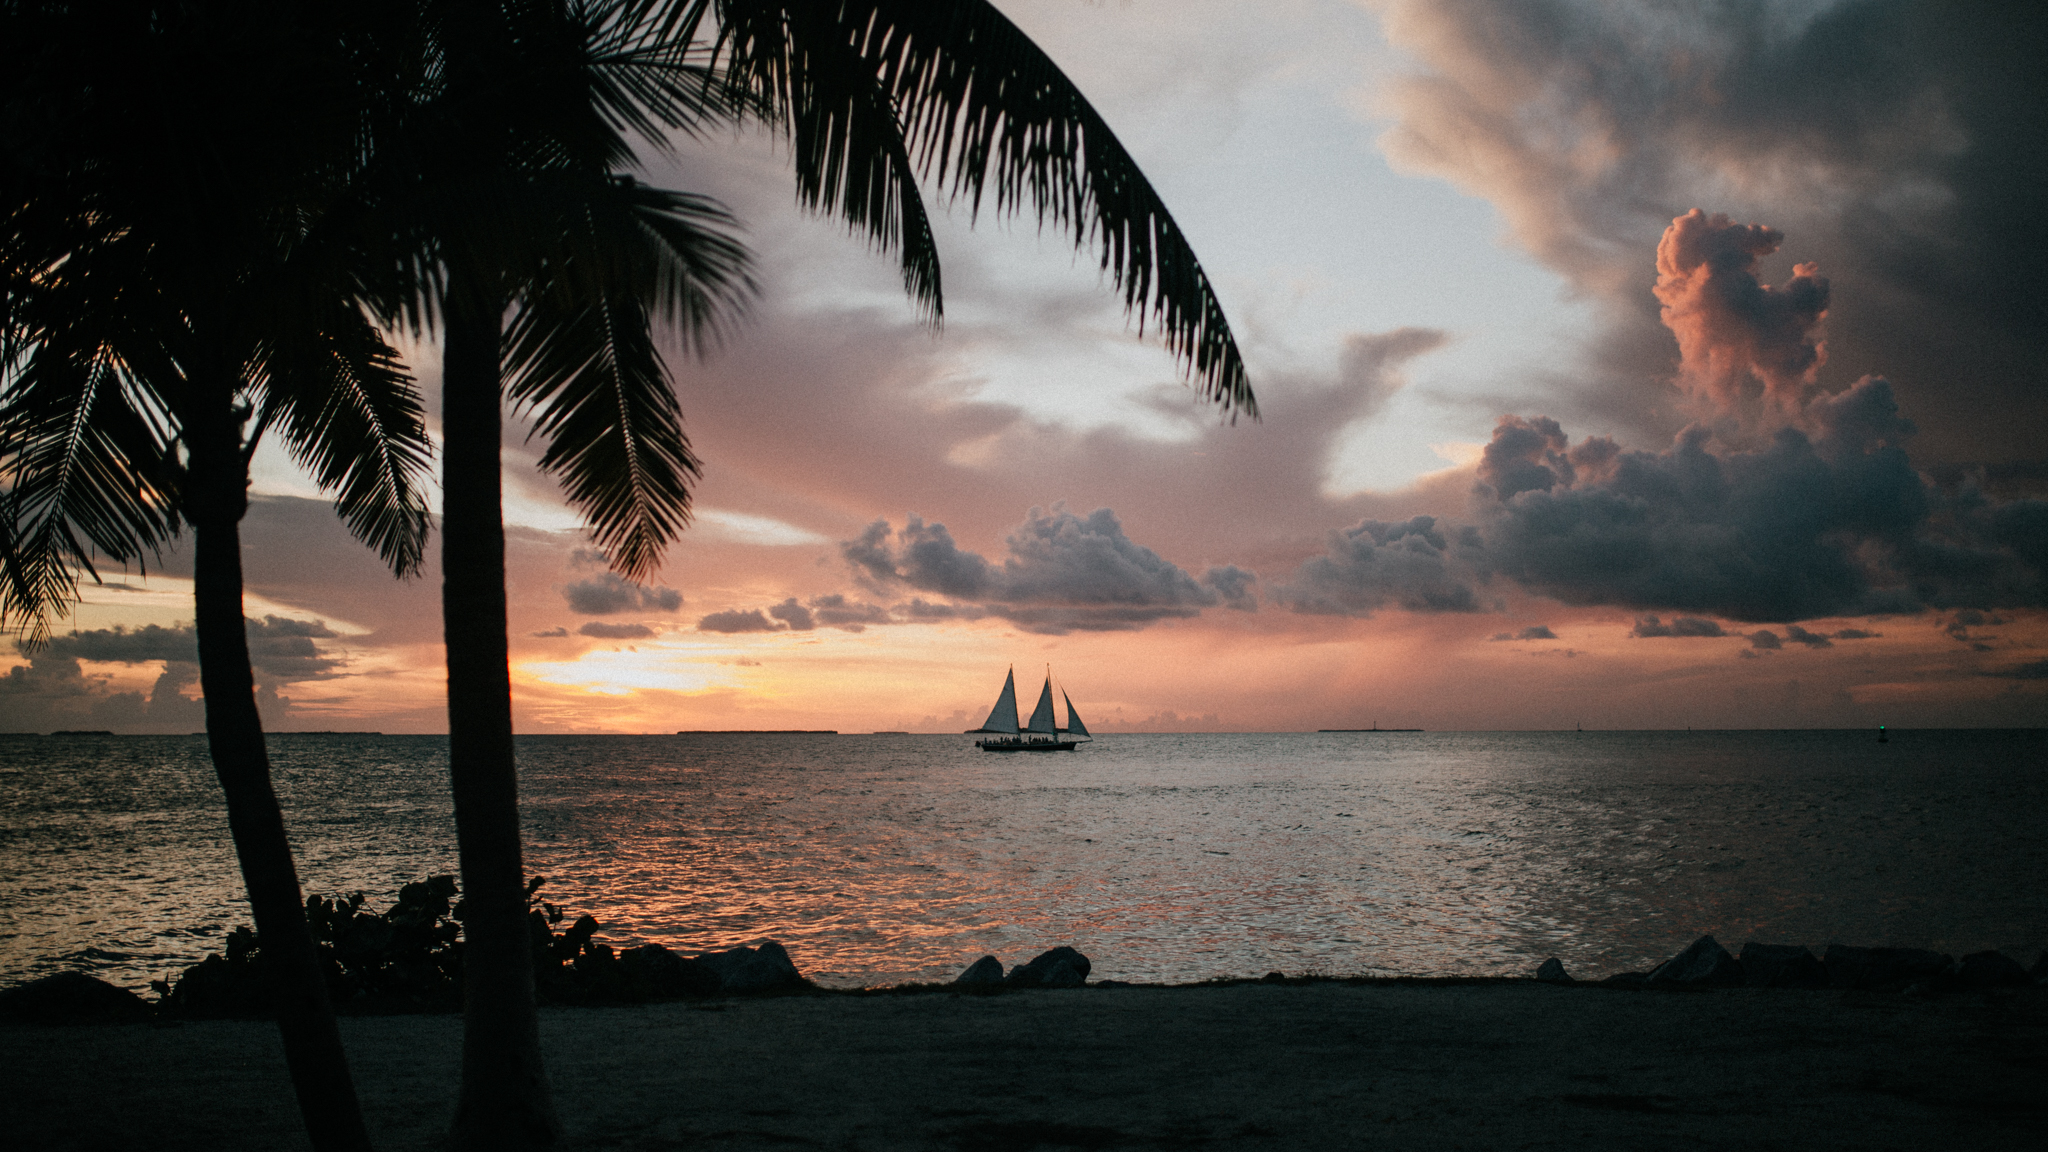 sunset, fort zachary, ft zach, lena perkins, key west photographer, visit key west, things to do